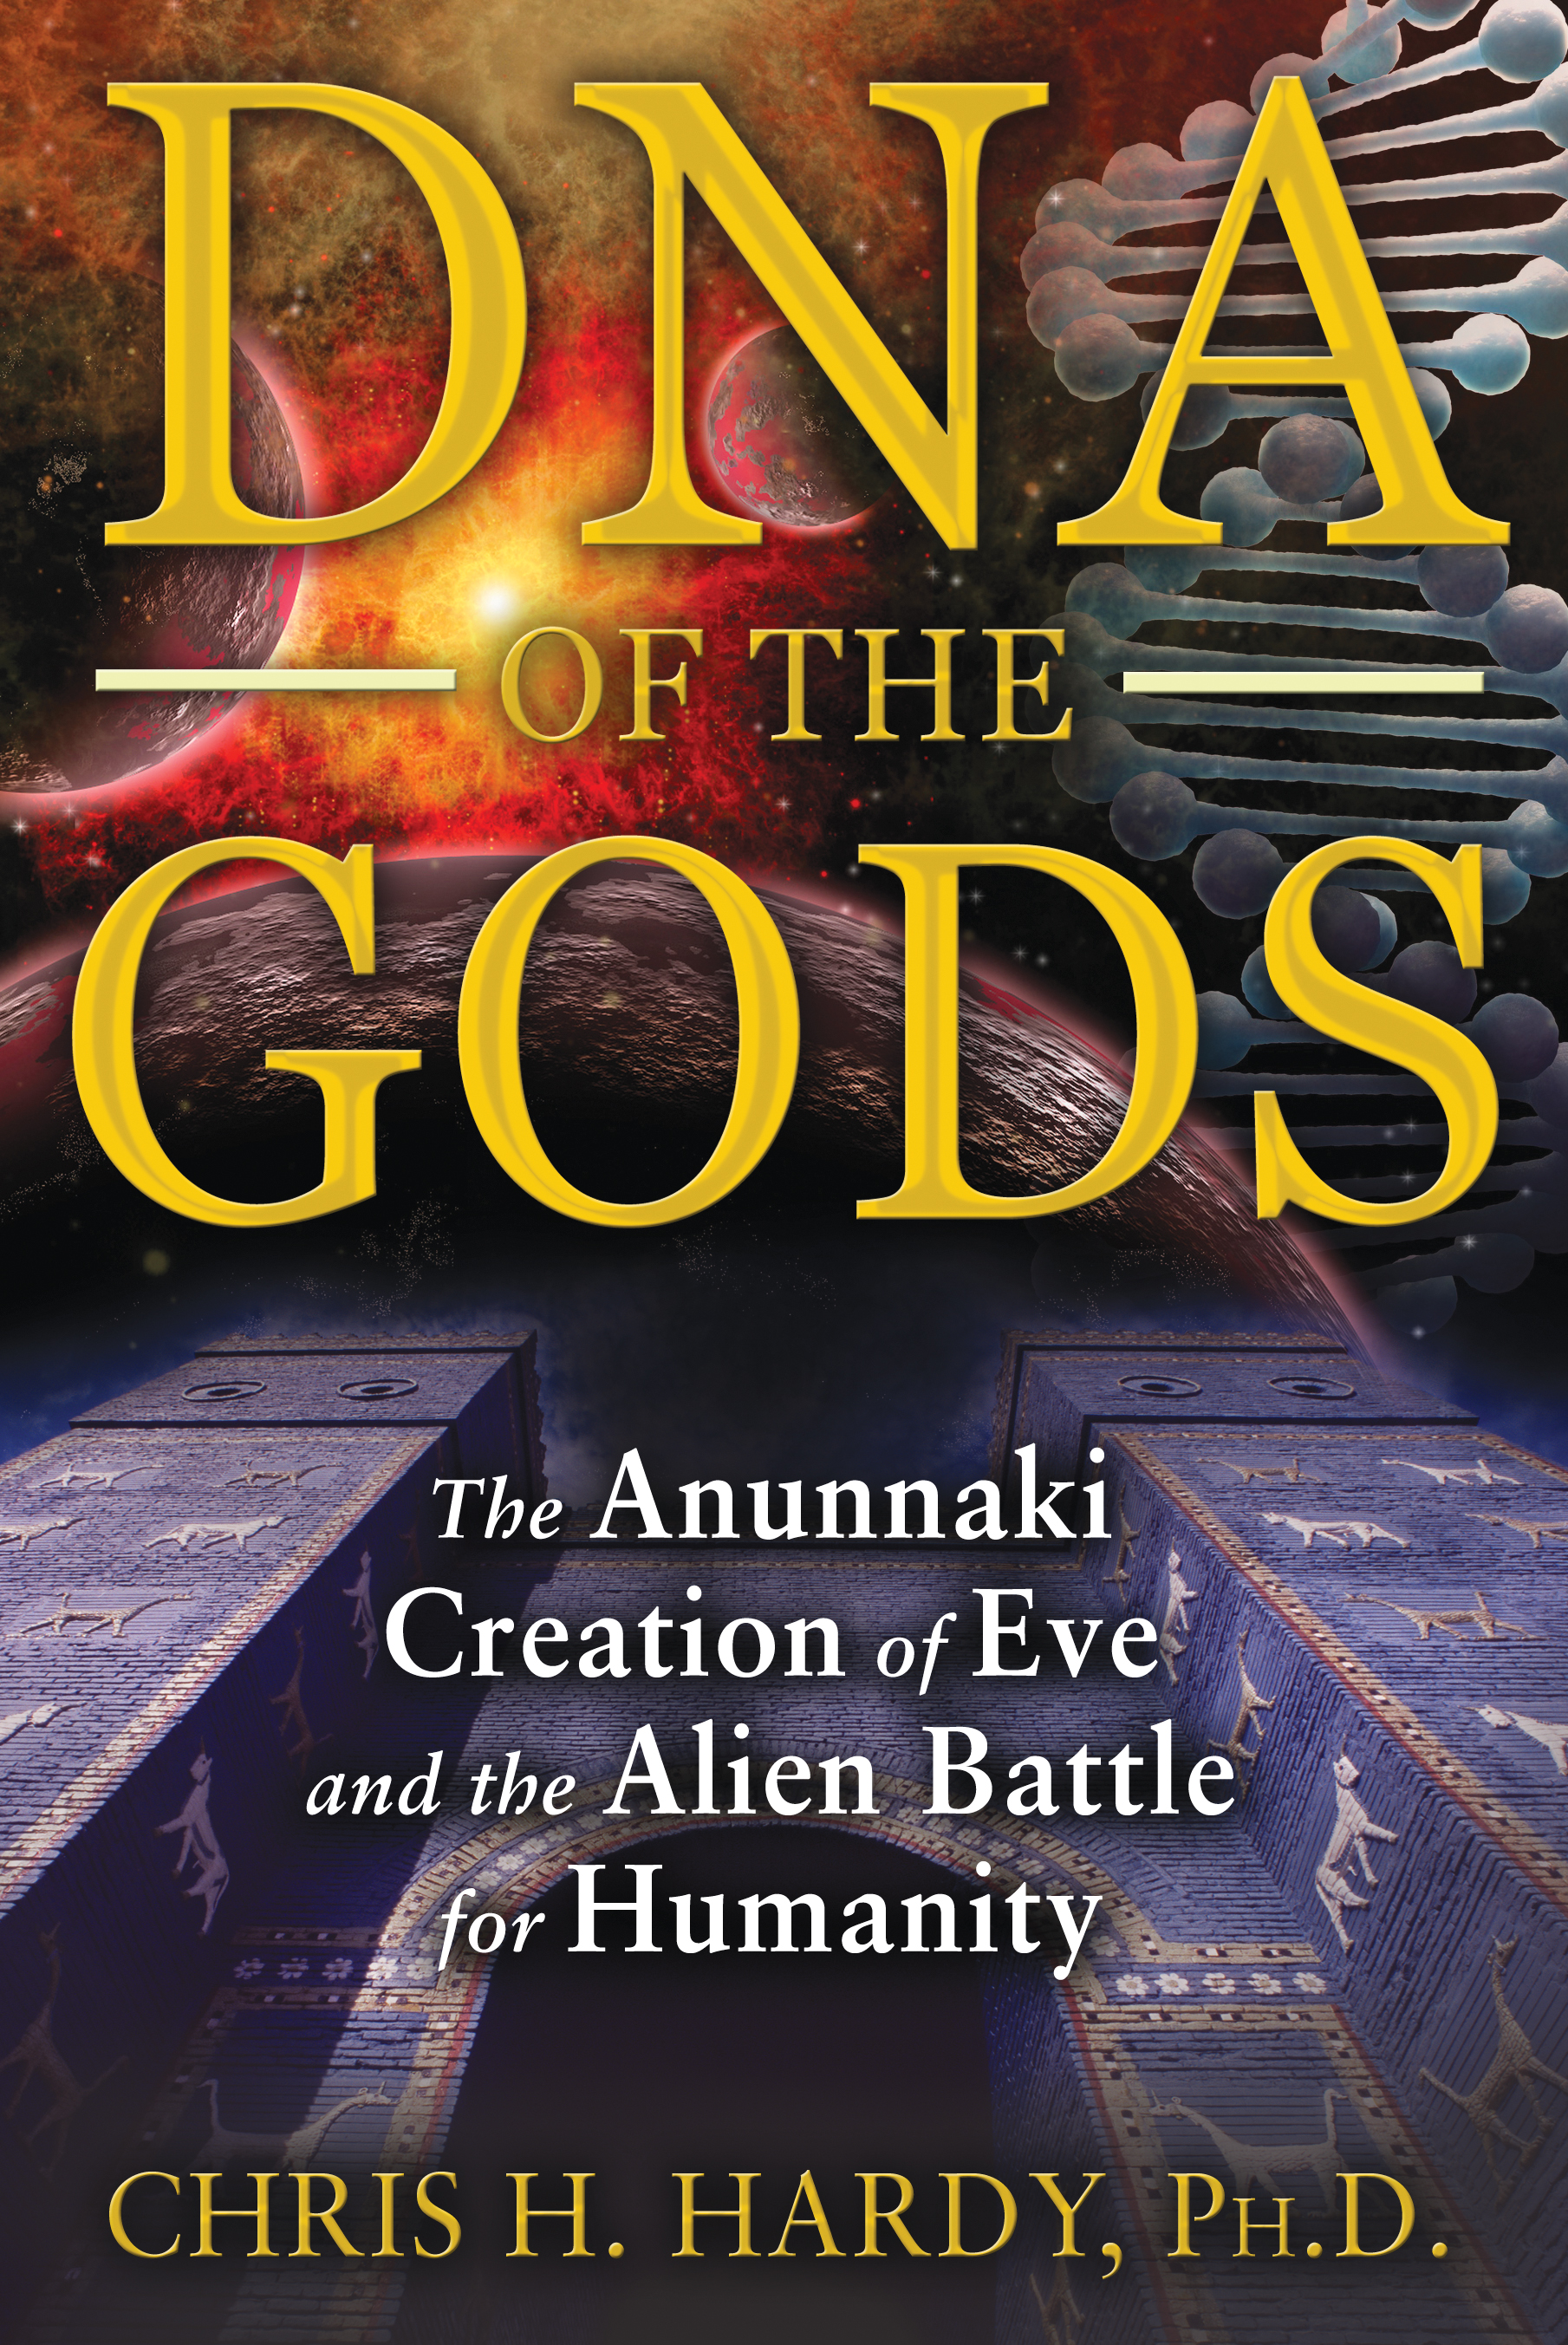 Dna-of-the-gods-9781591431855_hr